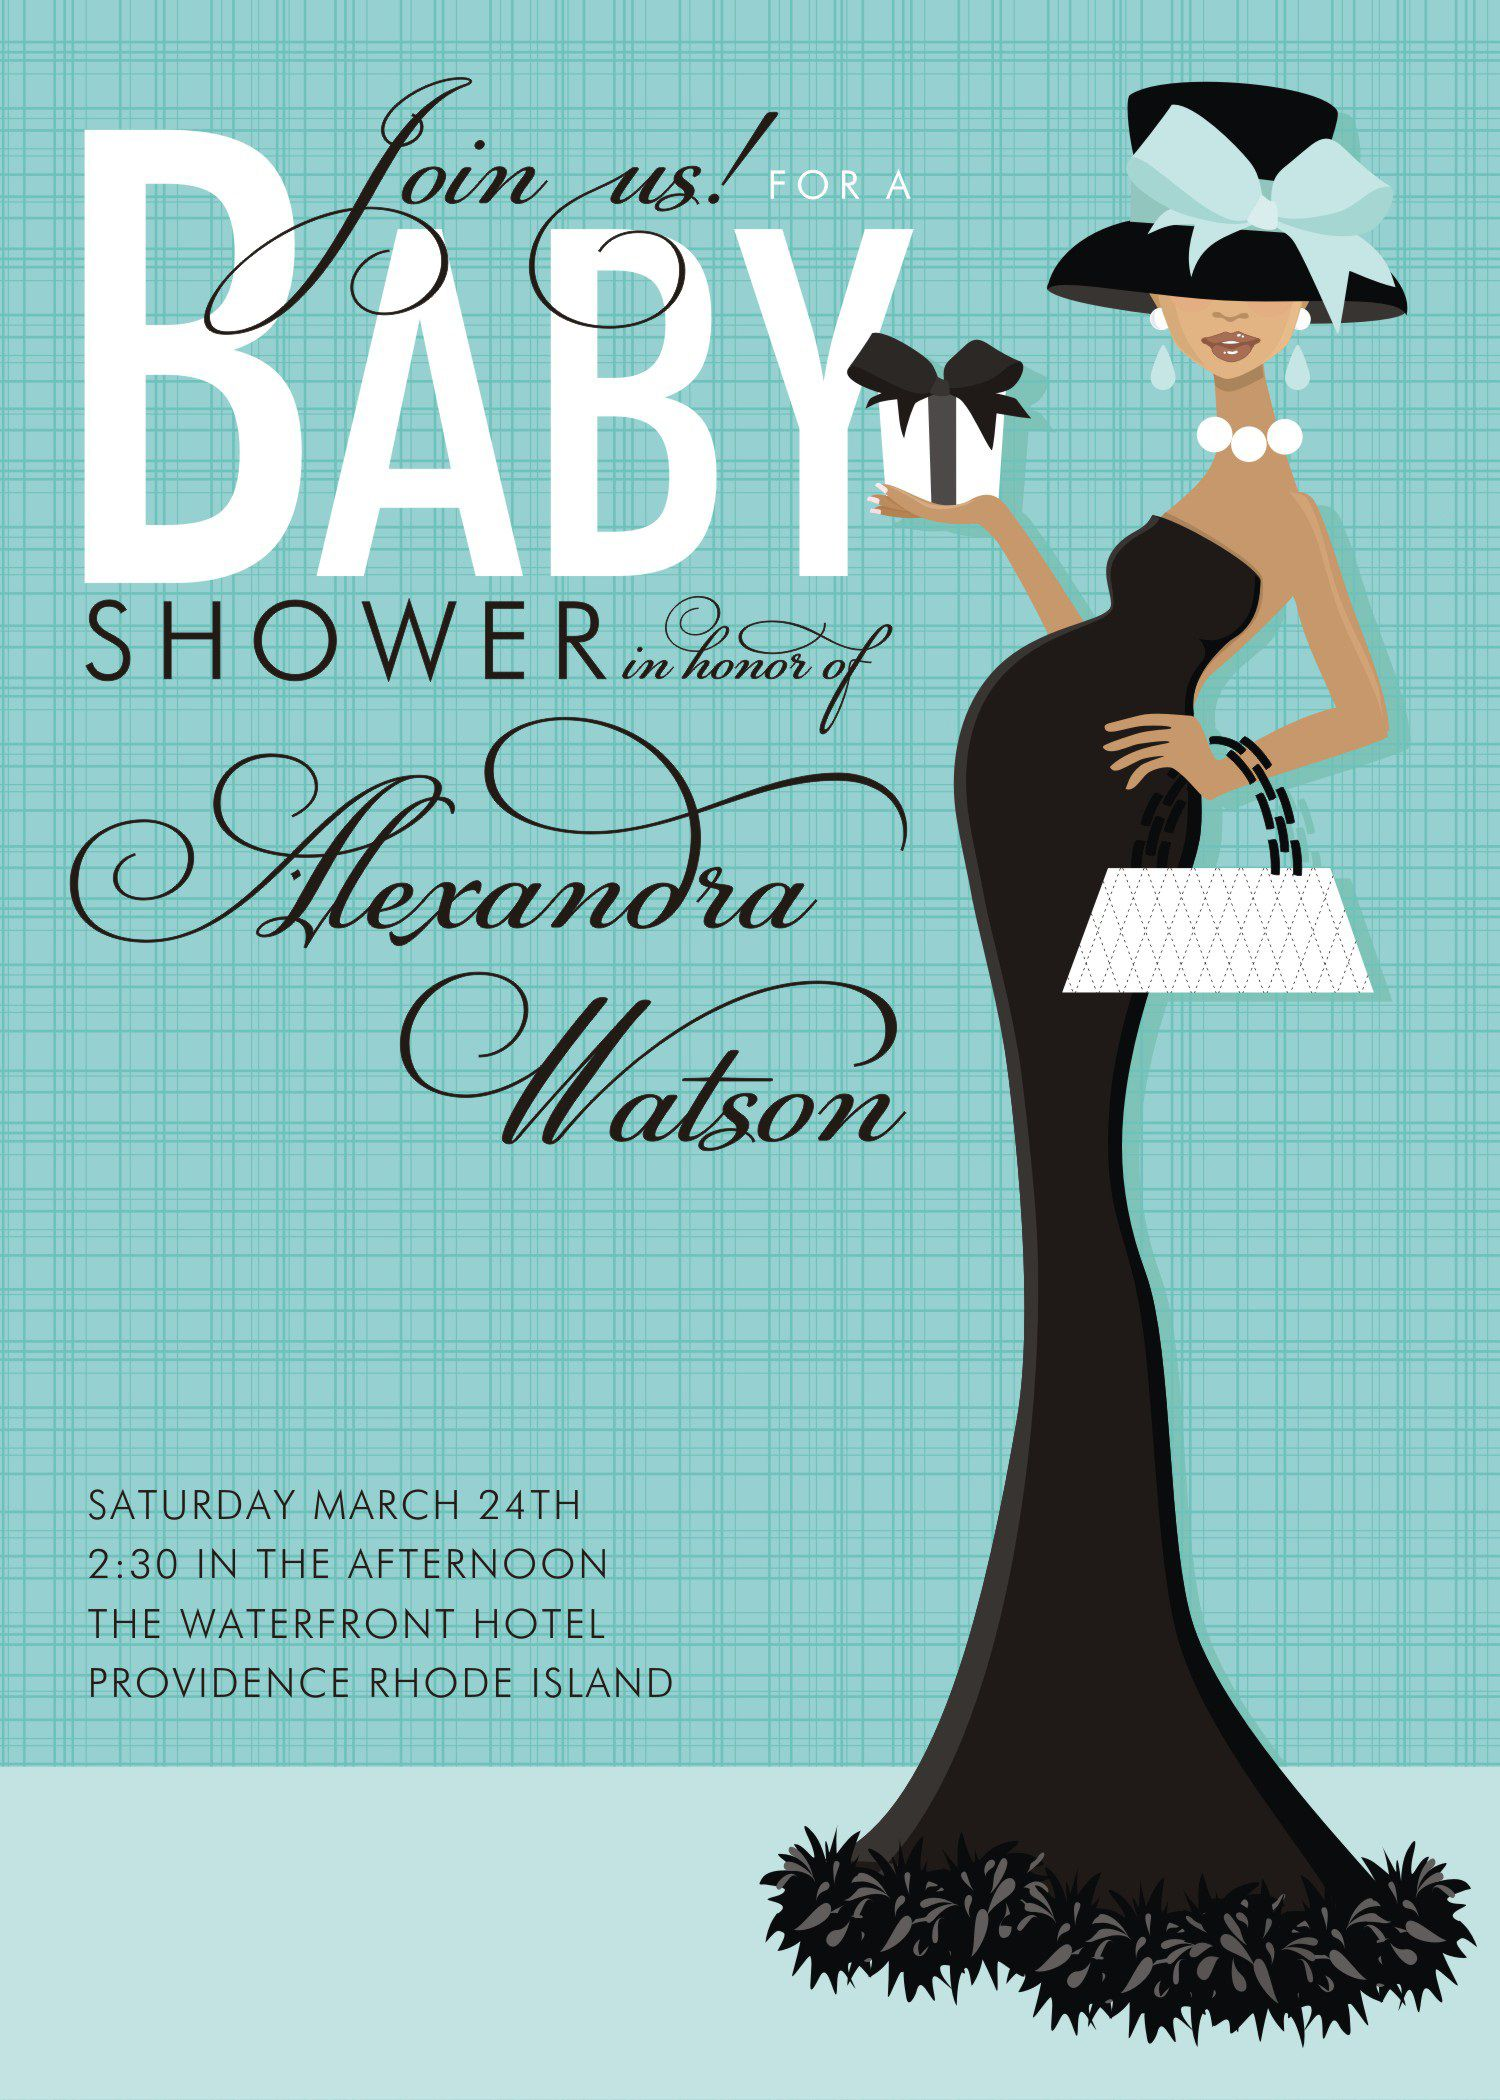 004 Imposing Baby Shower Invite Template Word High Resolution  Invitation Wording Sample Free ExampleFull